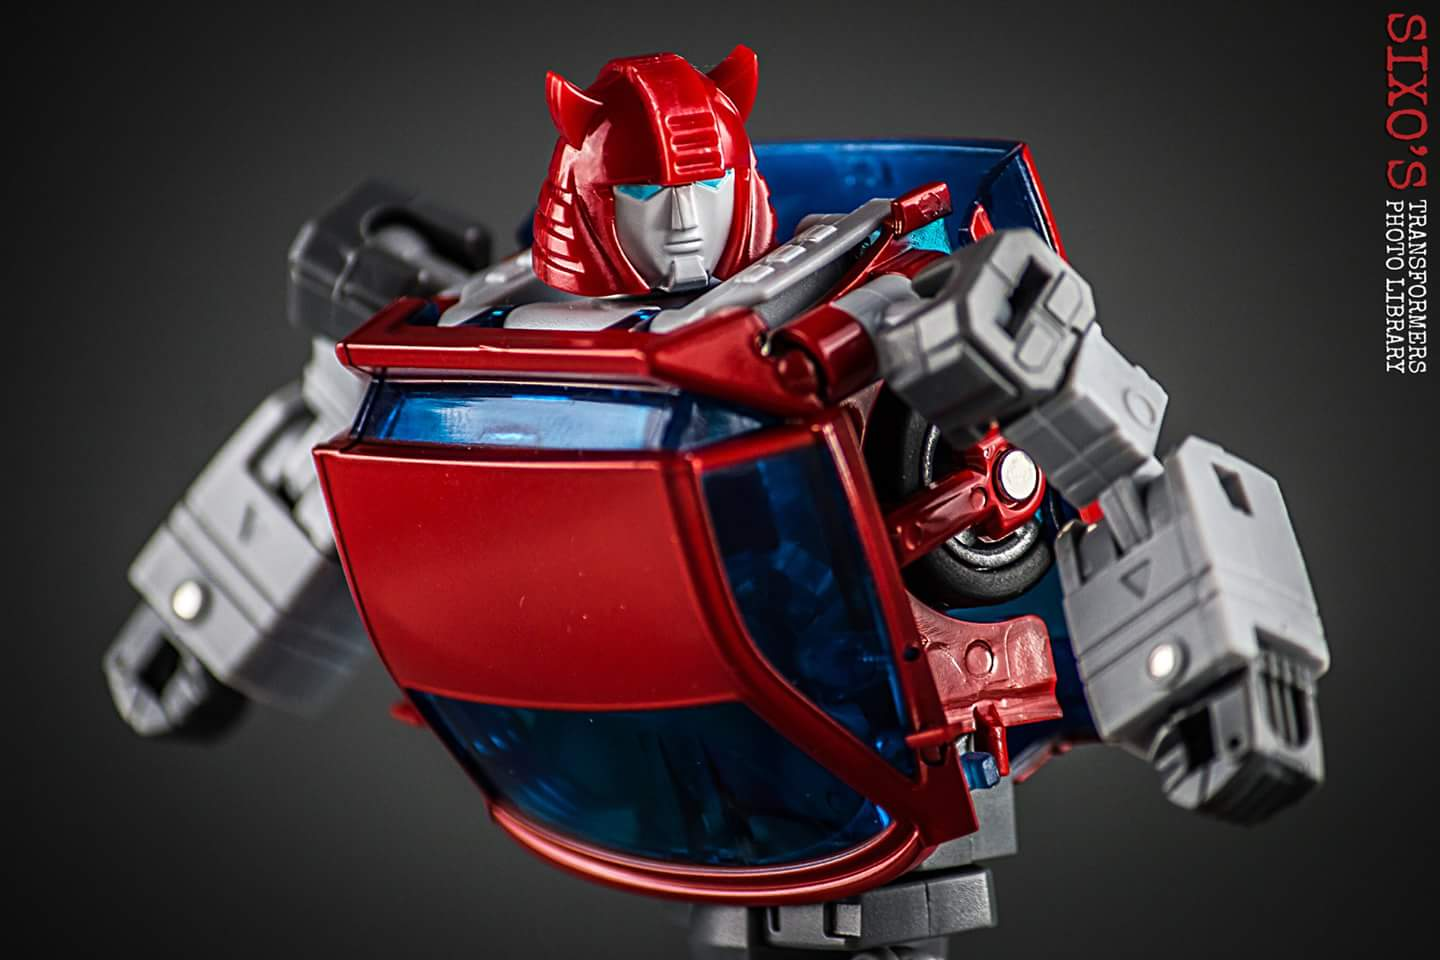 [ACE Collectables] Produit Tiers - Minibots MP - ACE-01 Tumbler (aka Cliffjumper/Matamore), ACE-02 Hiccups (aka Hubcap/Virevolto), ACE-03 Trident (aka Seaspray/Embruns) ObqWuWPo